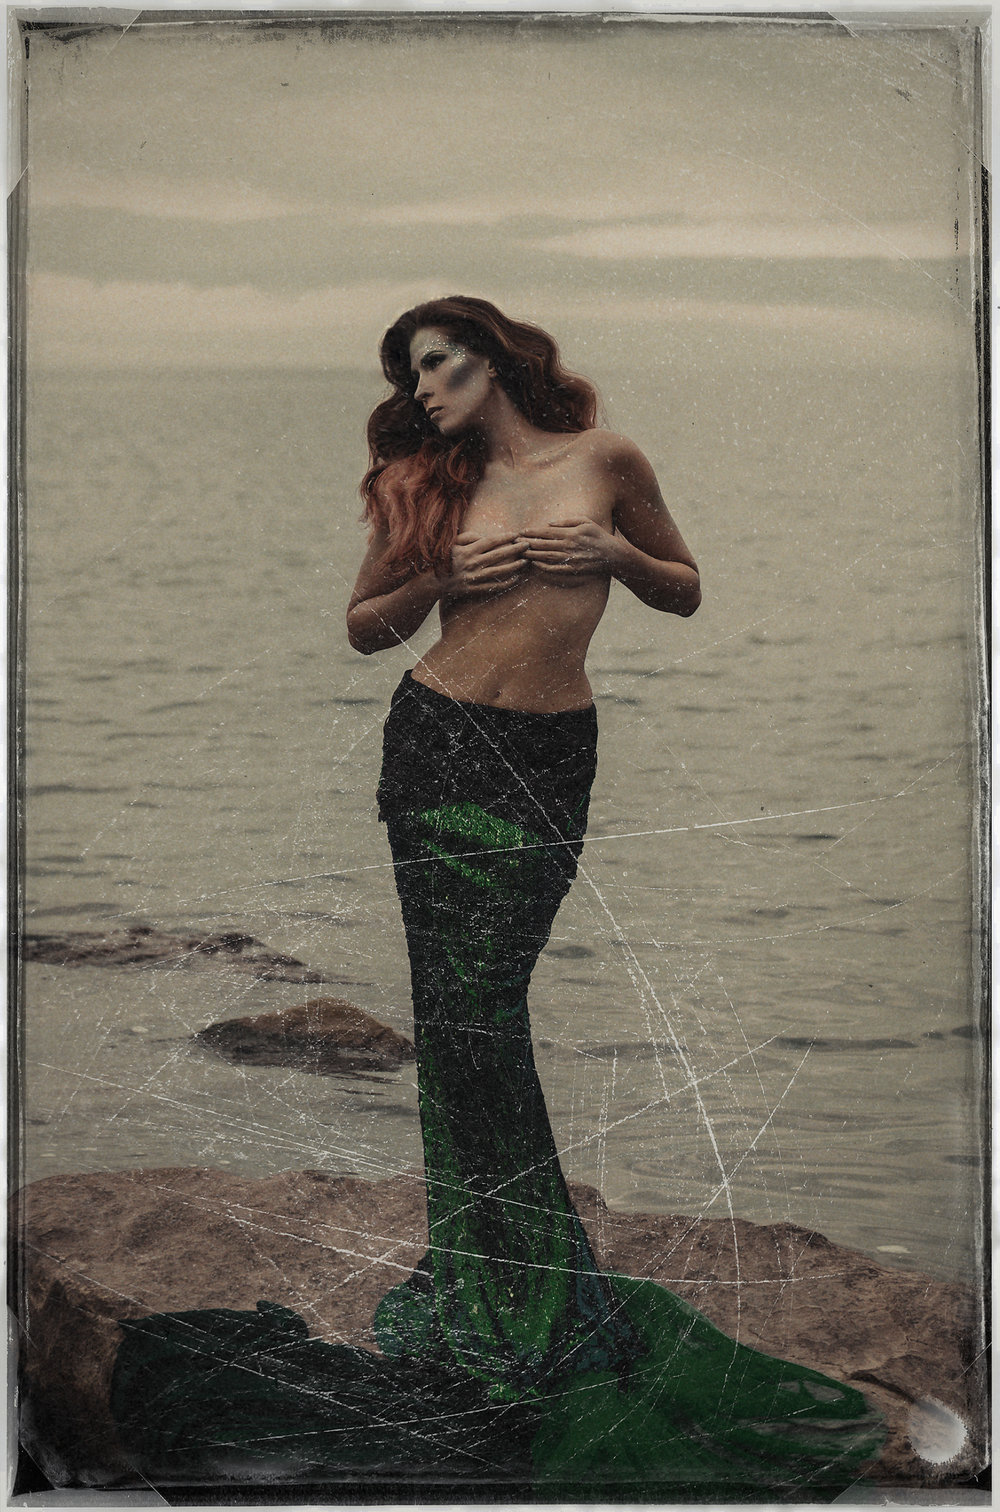 I must be a mermaid...I have no fear of depths anda great fear of shallow living. - - Anais Nin